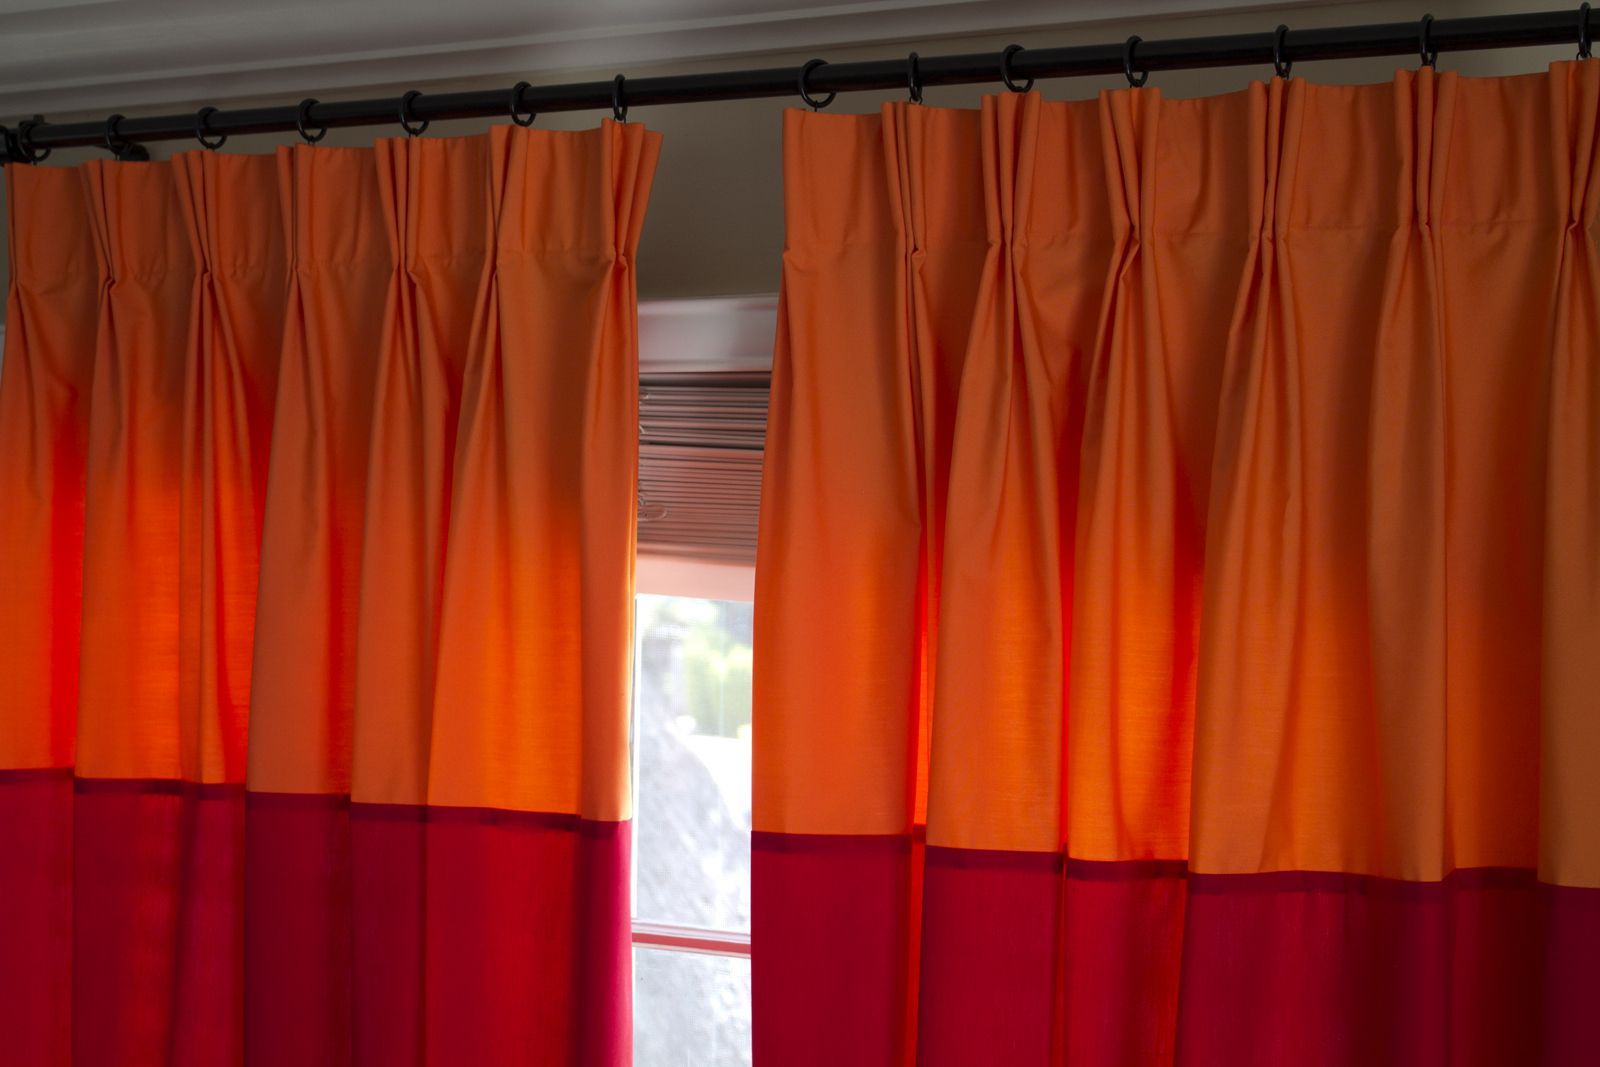 ideas without luxury dollclique pinch drapes ebay pleated pleat dsc to fresh make of hooks source tape a curtain curtains how patterned com